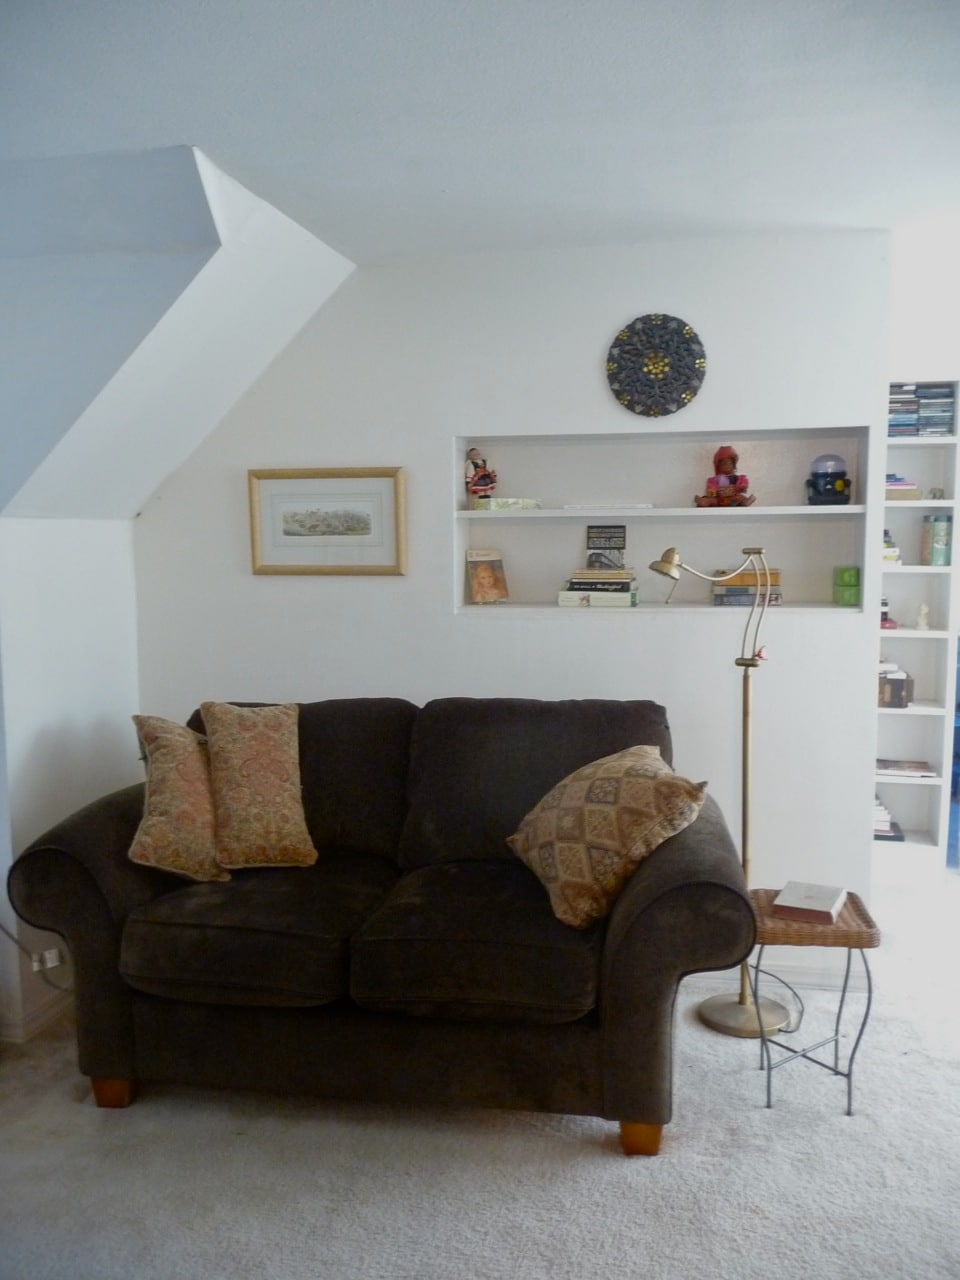 Part of the sitting room - also has a small tv and lots of books.